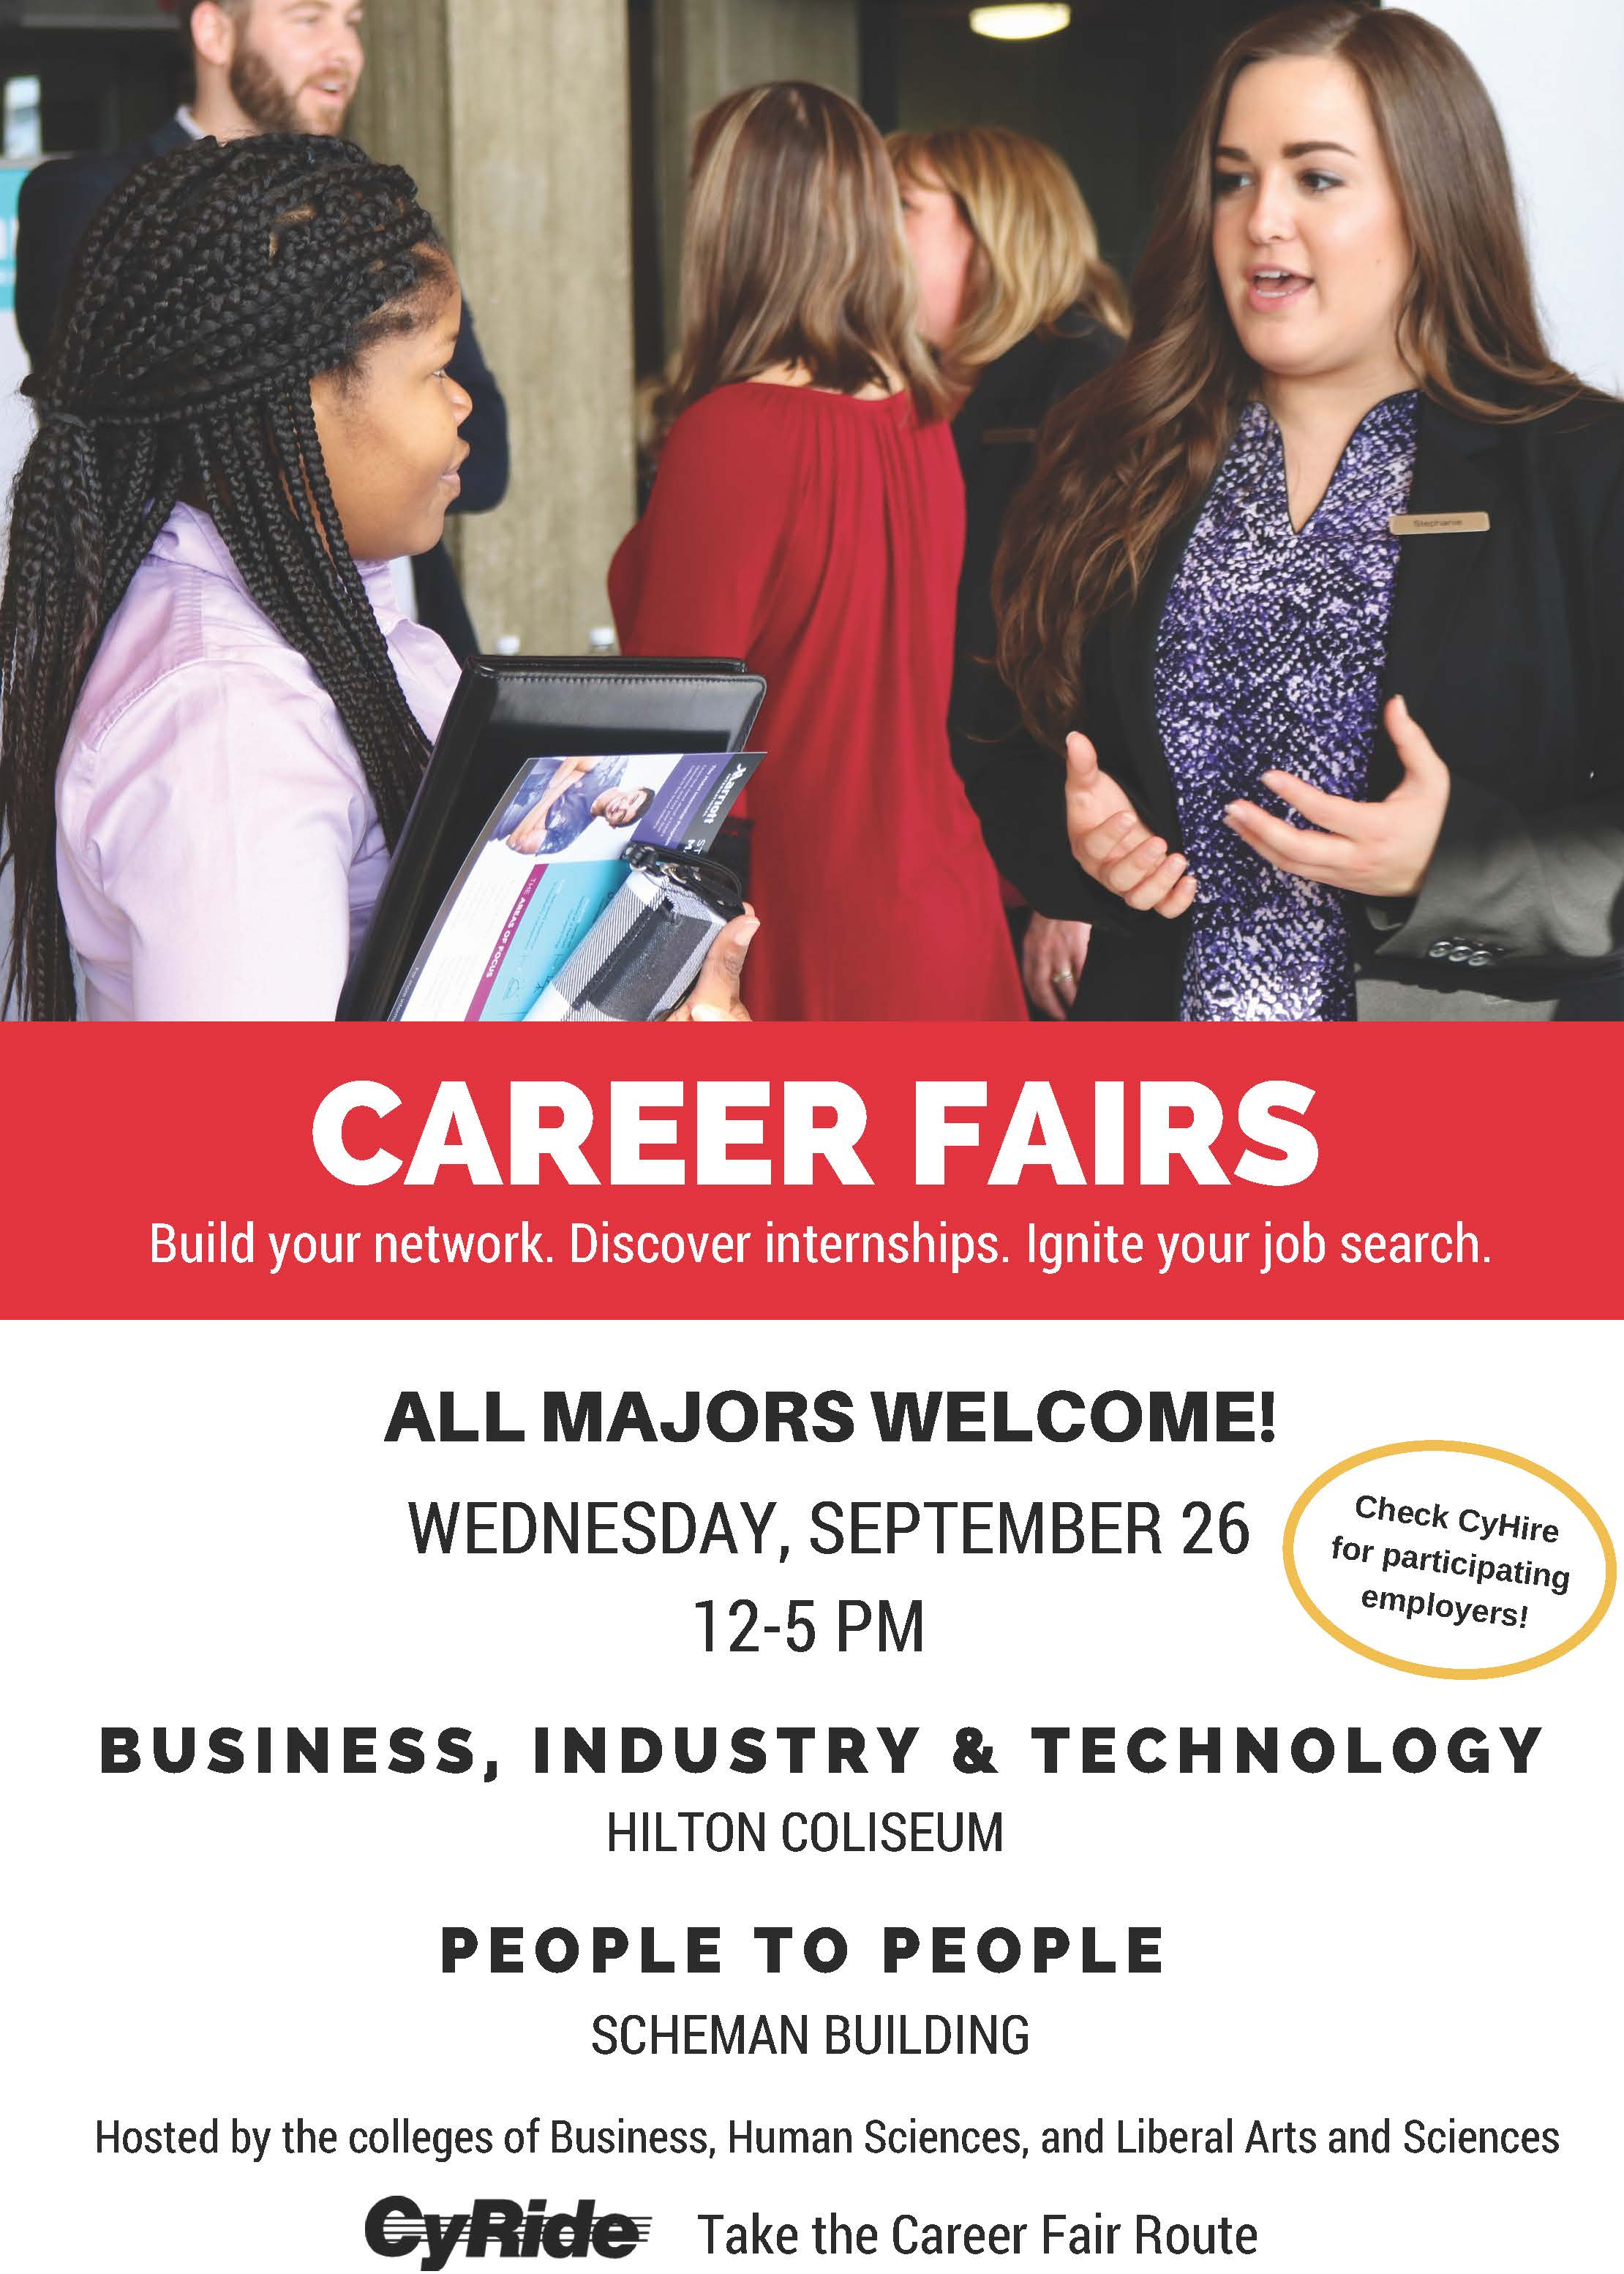 Flyer for career fairs stating: Career Fairs. Build your network. Discover internships. Igniter your job search. All Majors Welcome! Wednesday, September 26 12-5 PM. Check CyHire for participating employers. Business, Industry & Technology: Hilton Coliseum. People to People: Scheman Building. Hosted by the colleges of Business, Human Sciences, and Liberal Arts and Sciences. CyRide: Take the Career Fair Route.